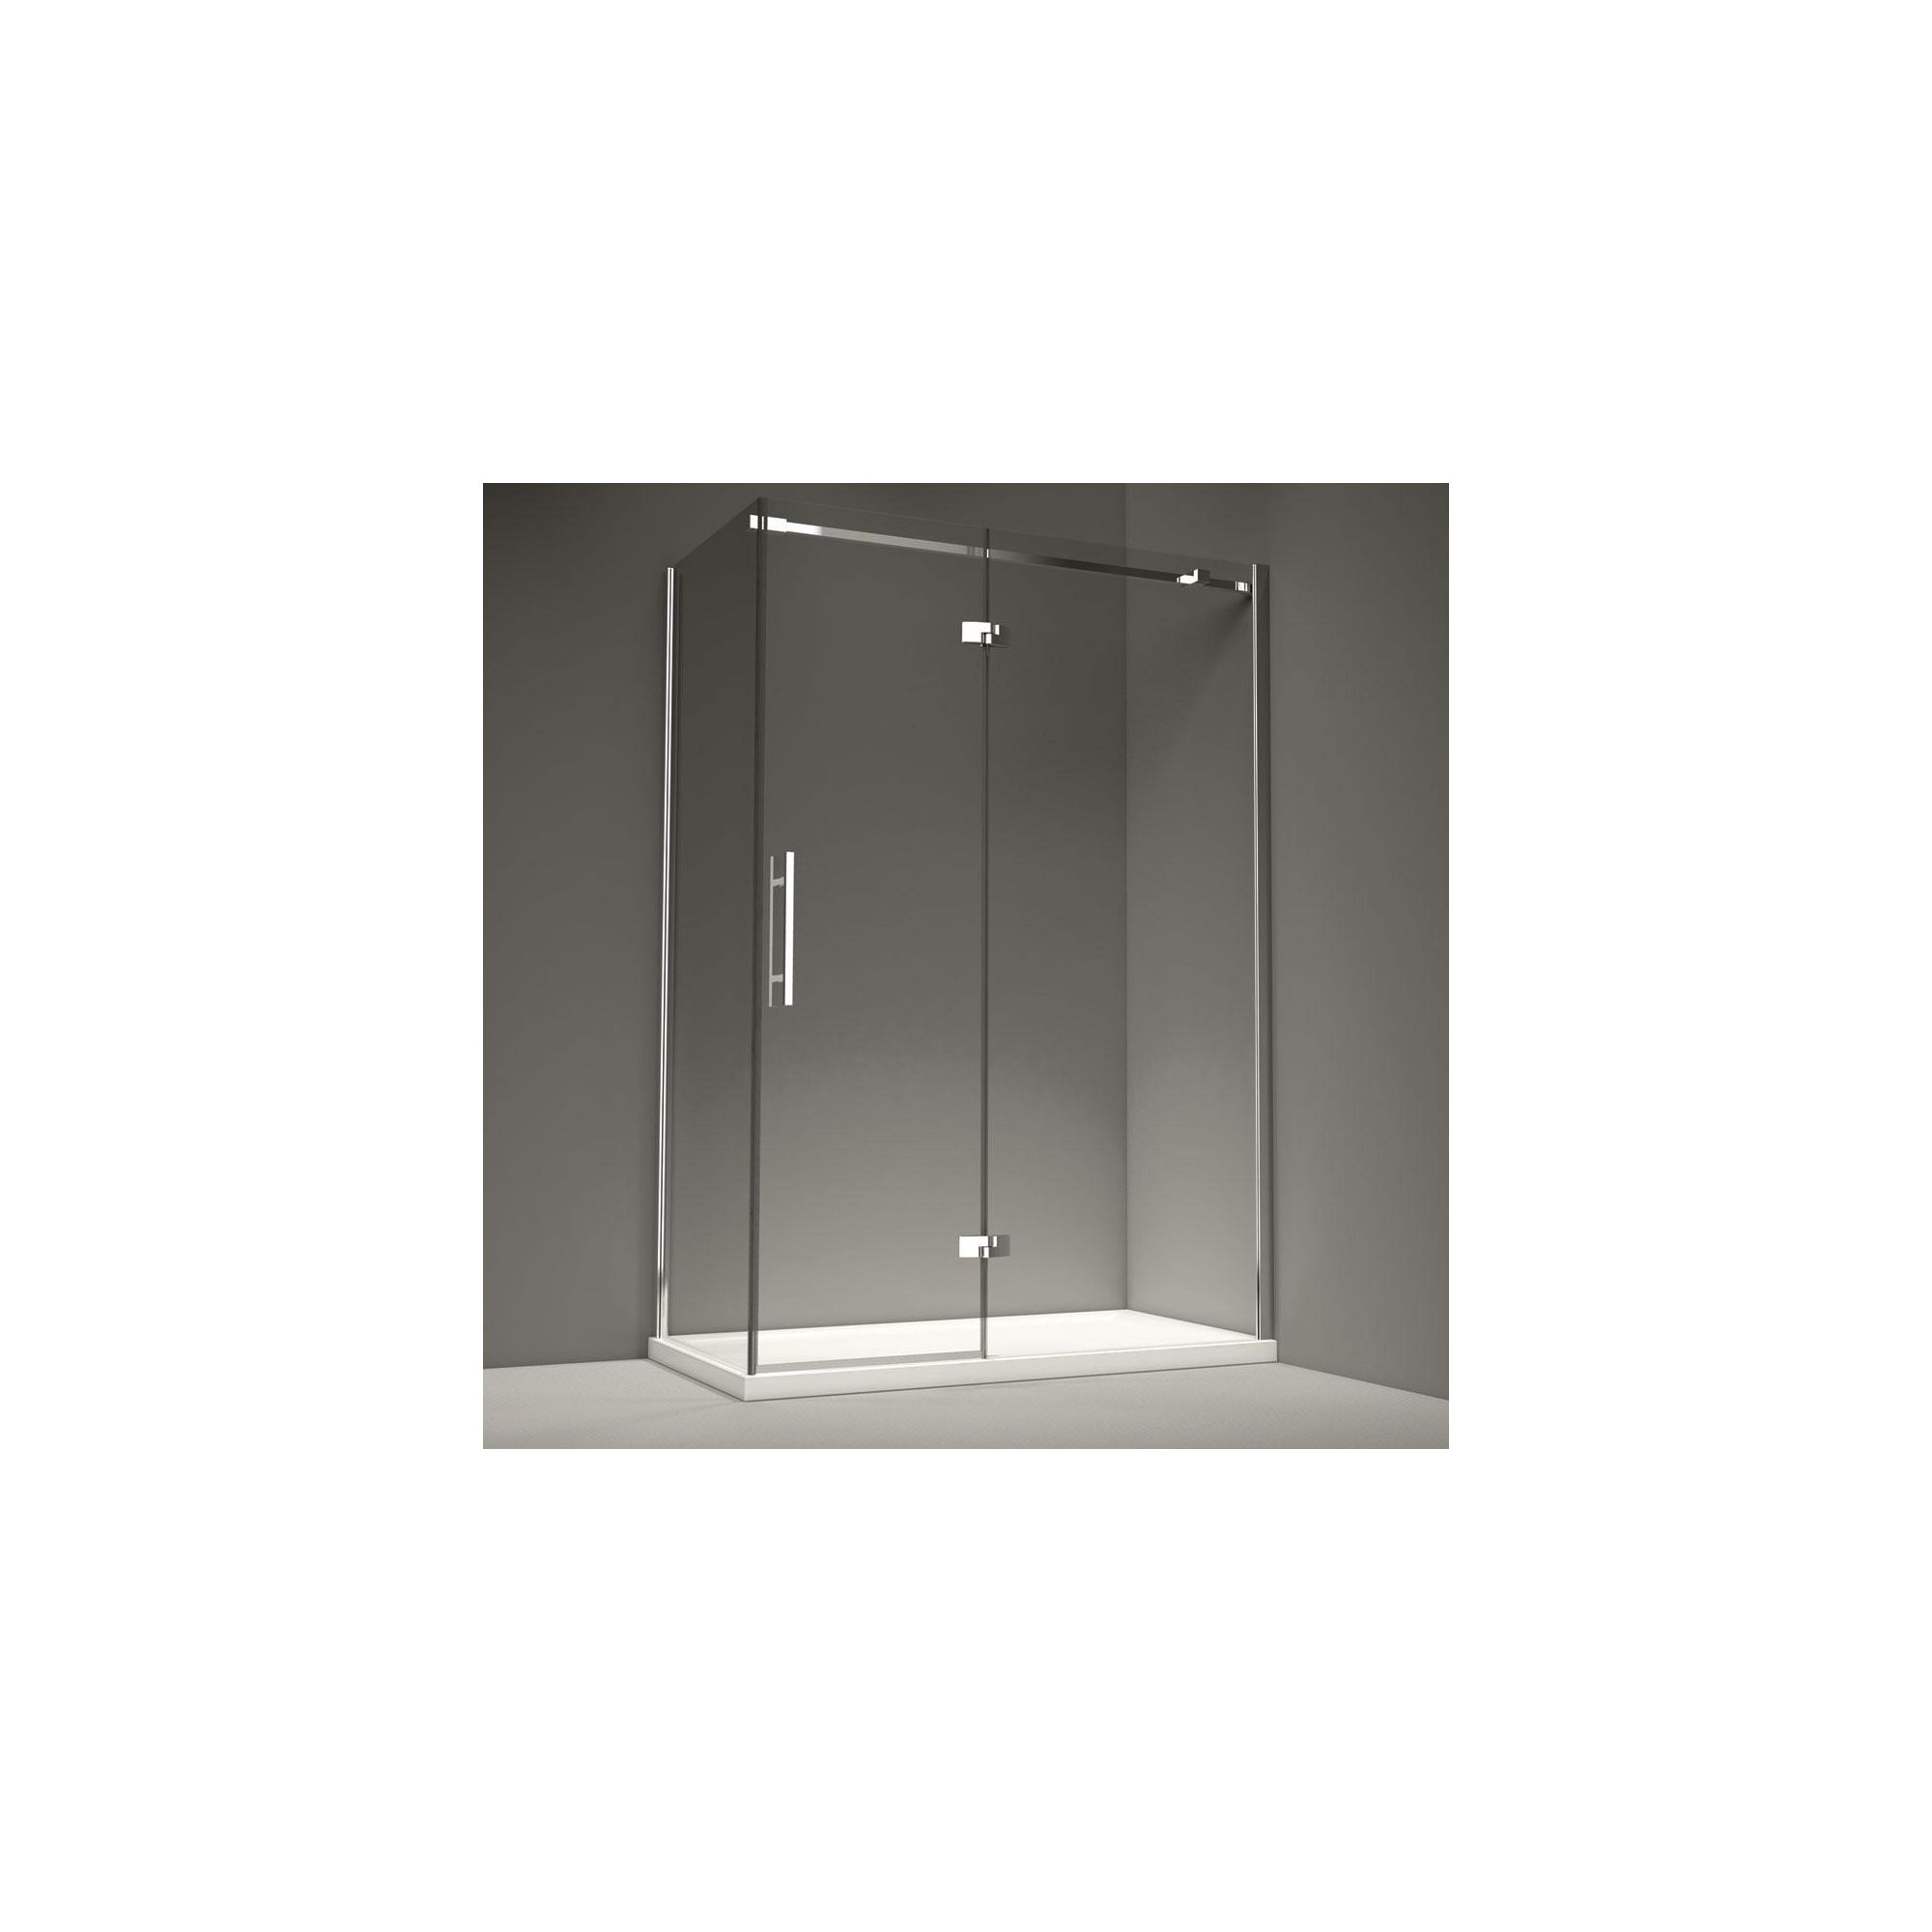 Merlyn Series 9 Inline Hinged Shower Door, 1100mm Wide, 8mm Glass, Right Handed at Tesco Direct